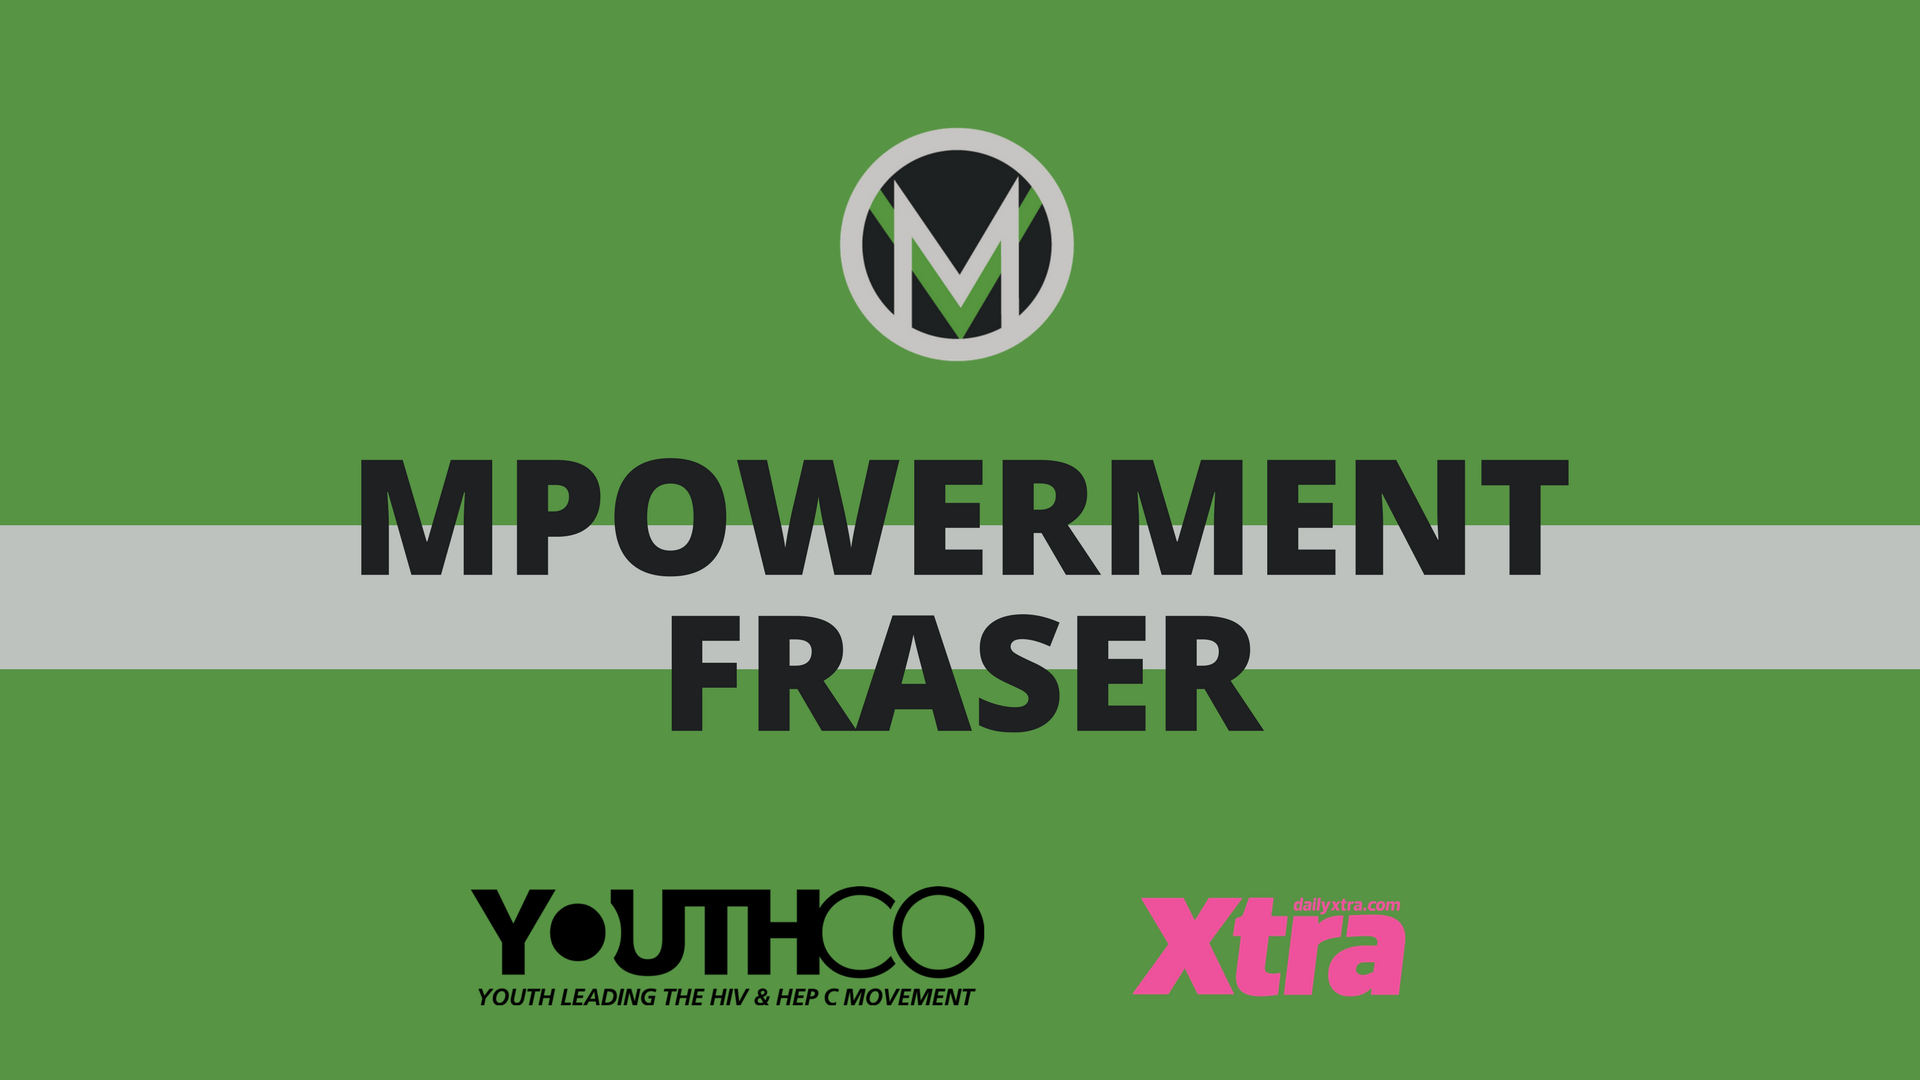 Mpowerment_Fraser_Cover_Banner_NEW_with_Xtra_Logo.png